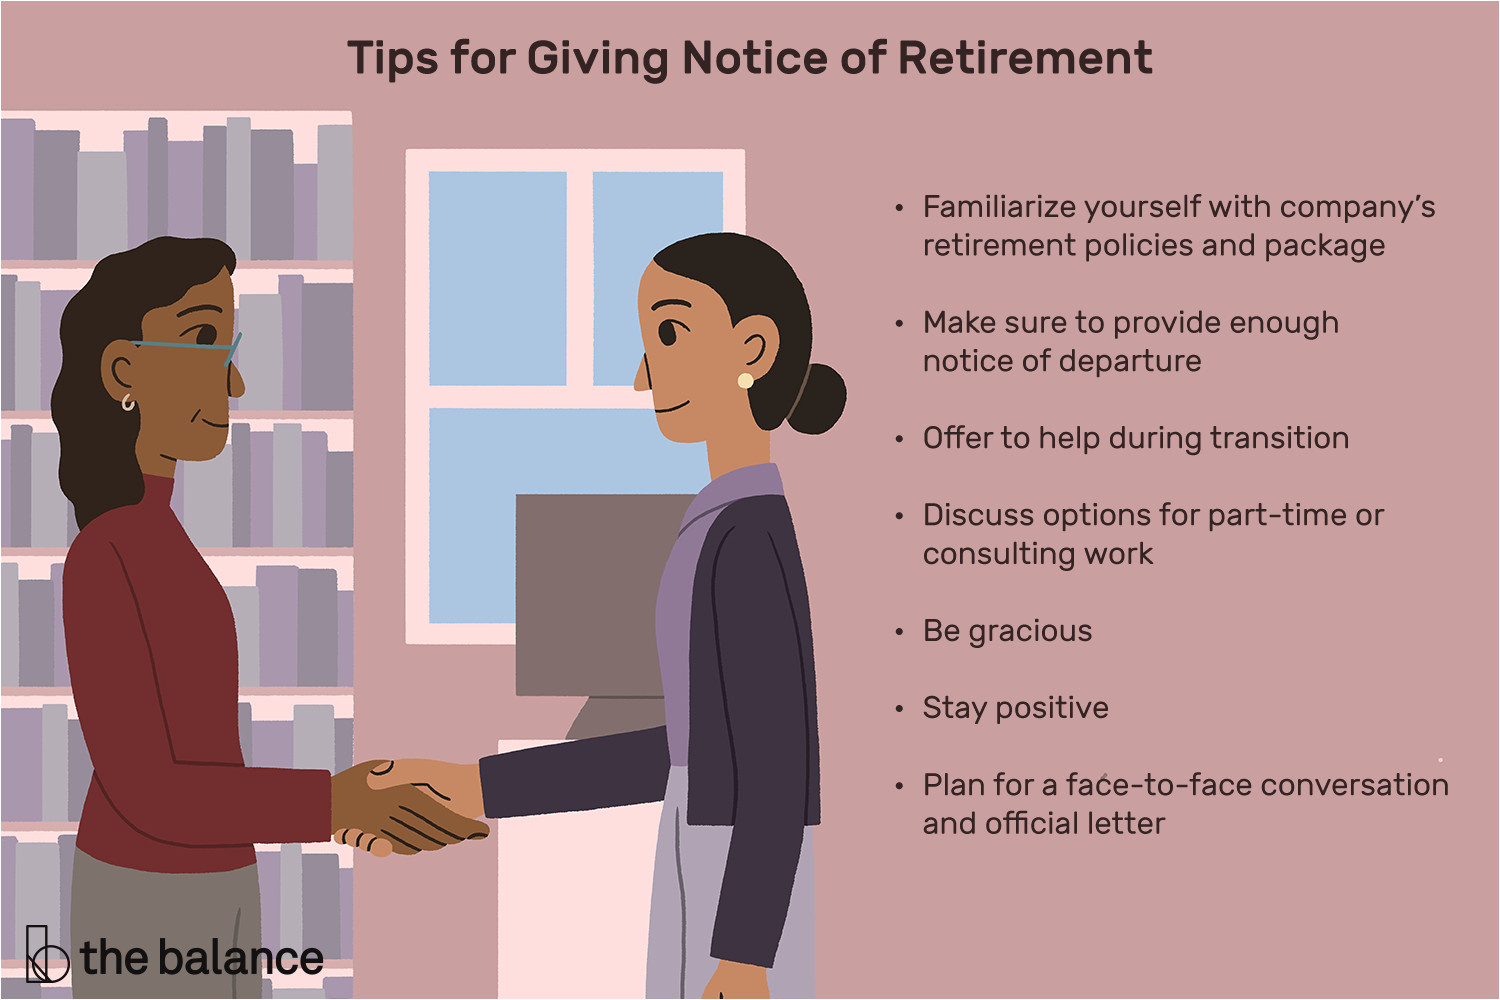 retirement letter example to notify employer 2063065 final d14d36780d31408a96c3637dc014ac2a png